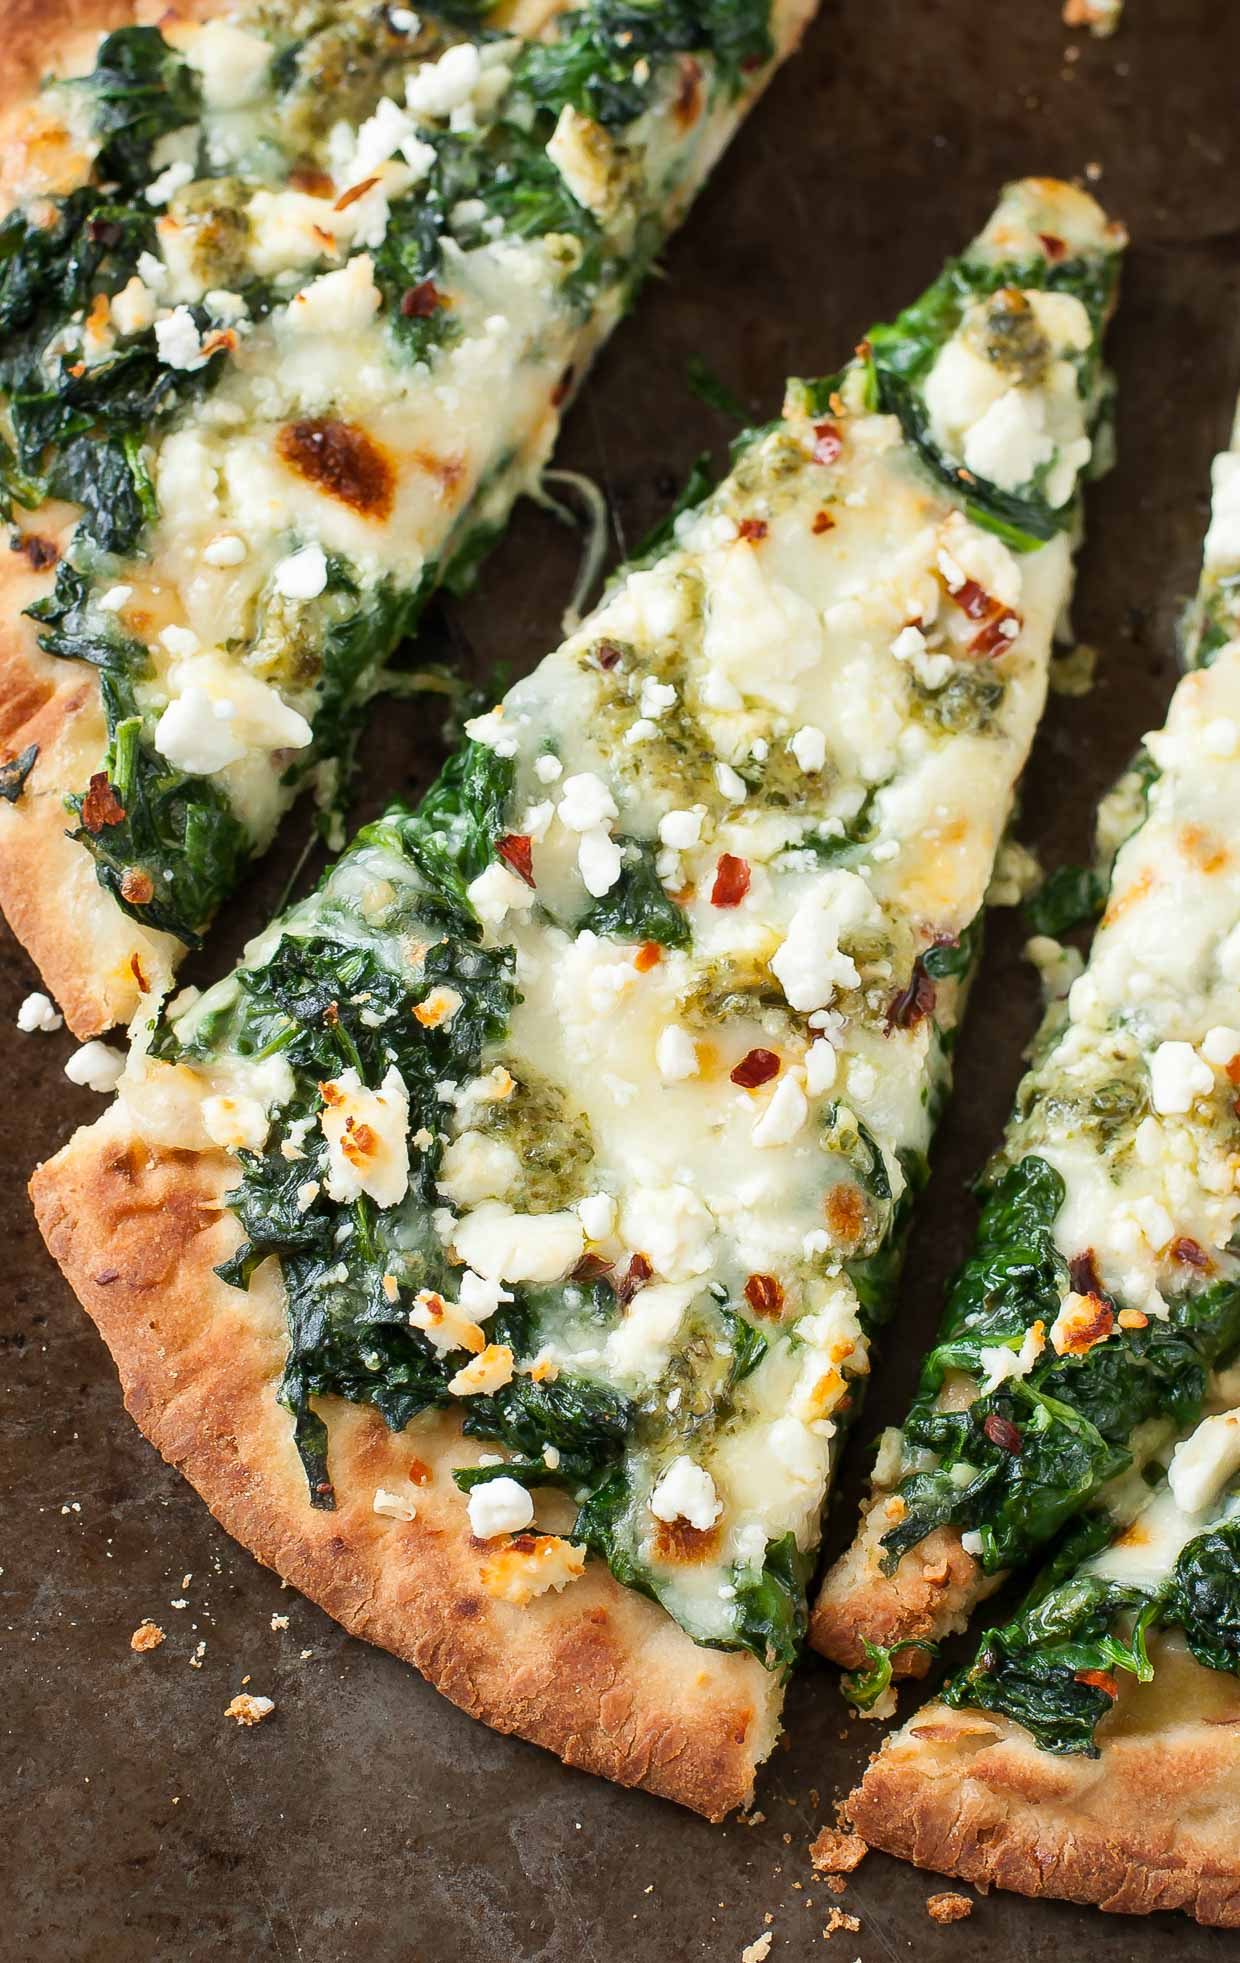 Put on your pizza pants and get your pizza fix with these 8 Easy Pizza Recipes! Gluten-Free, Vegetarian, and Low-Carb options available too! Hellooooo pizza night! :: Three Cheese Pesto Spinach Flatbread Pizza